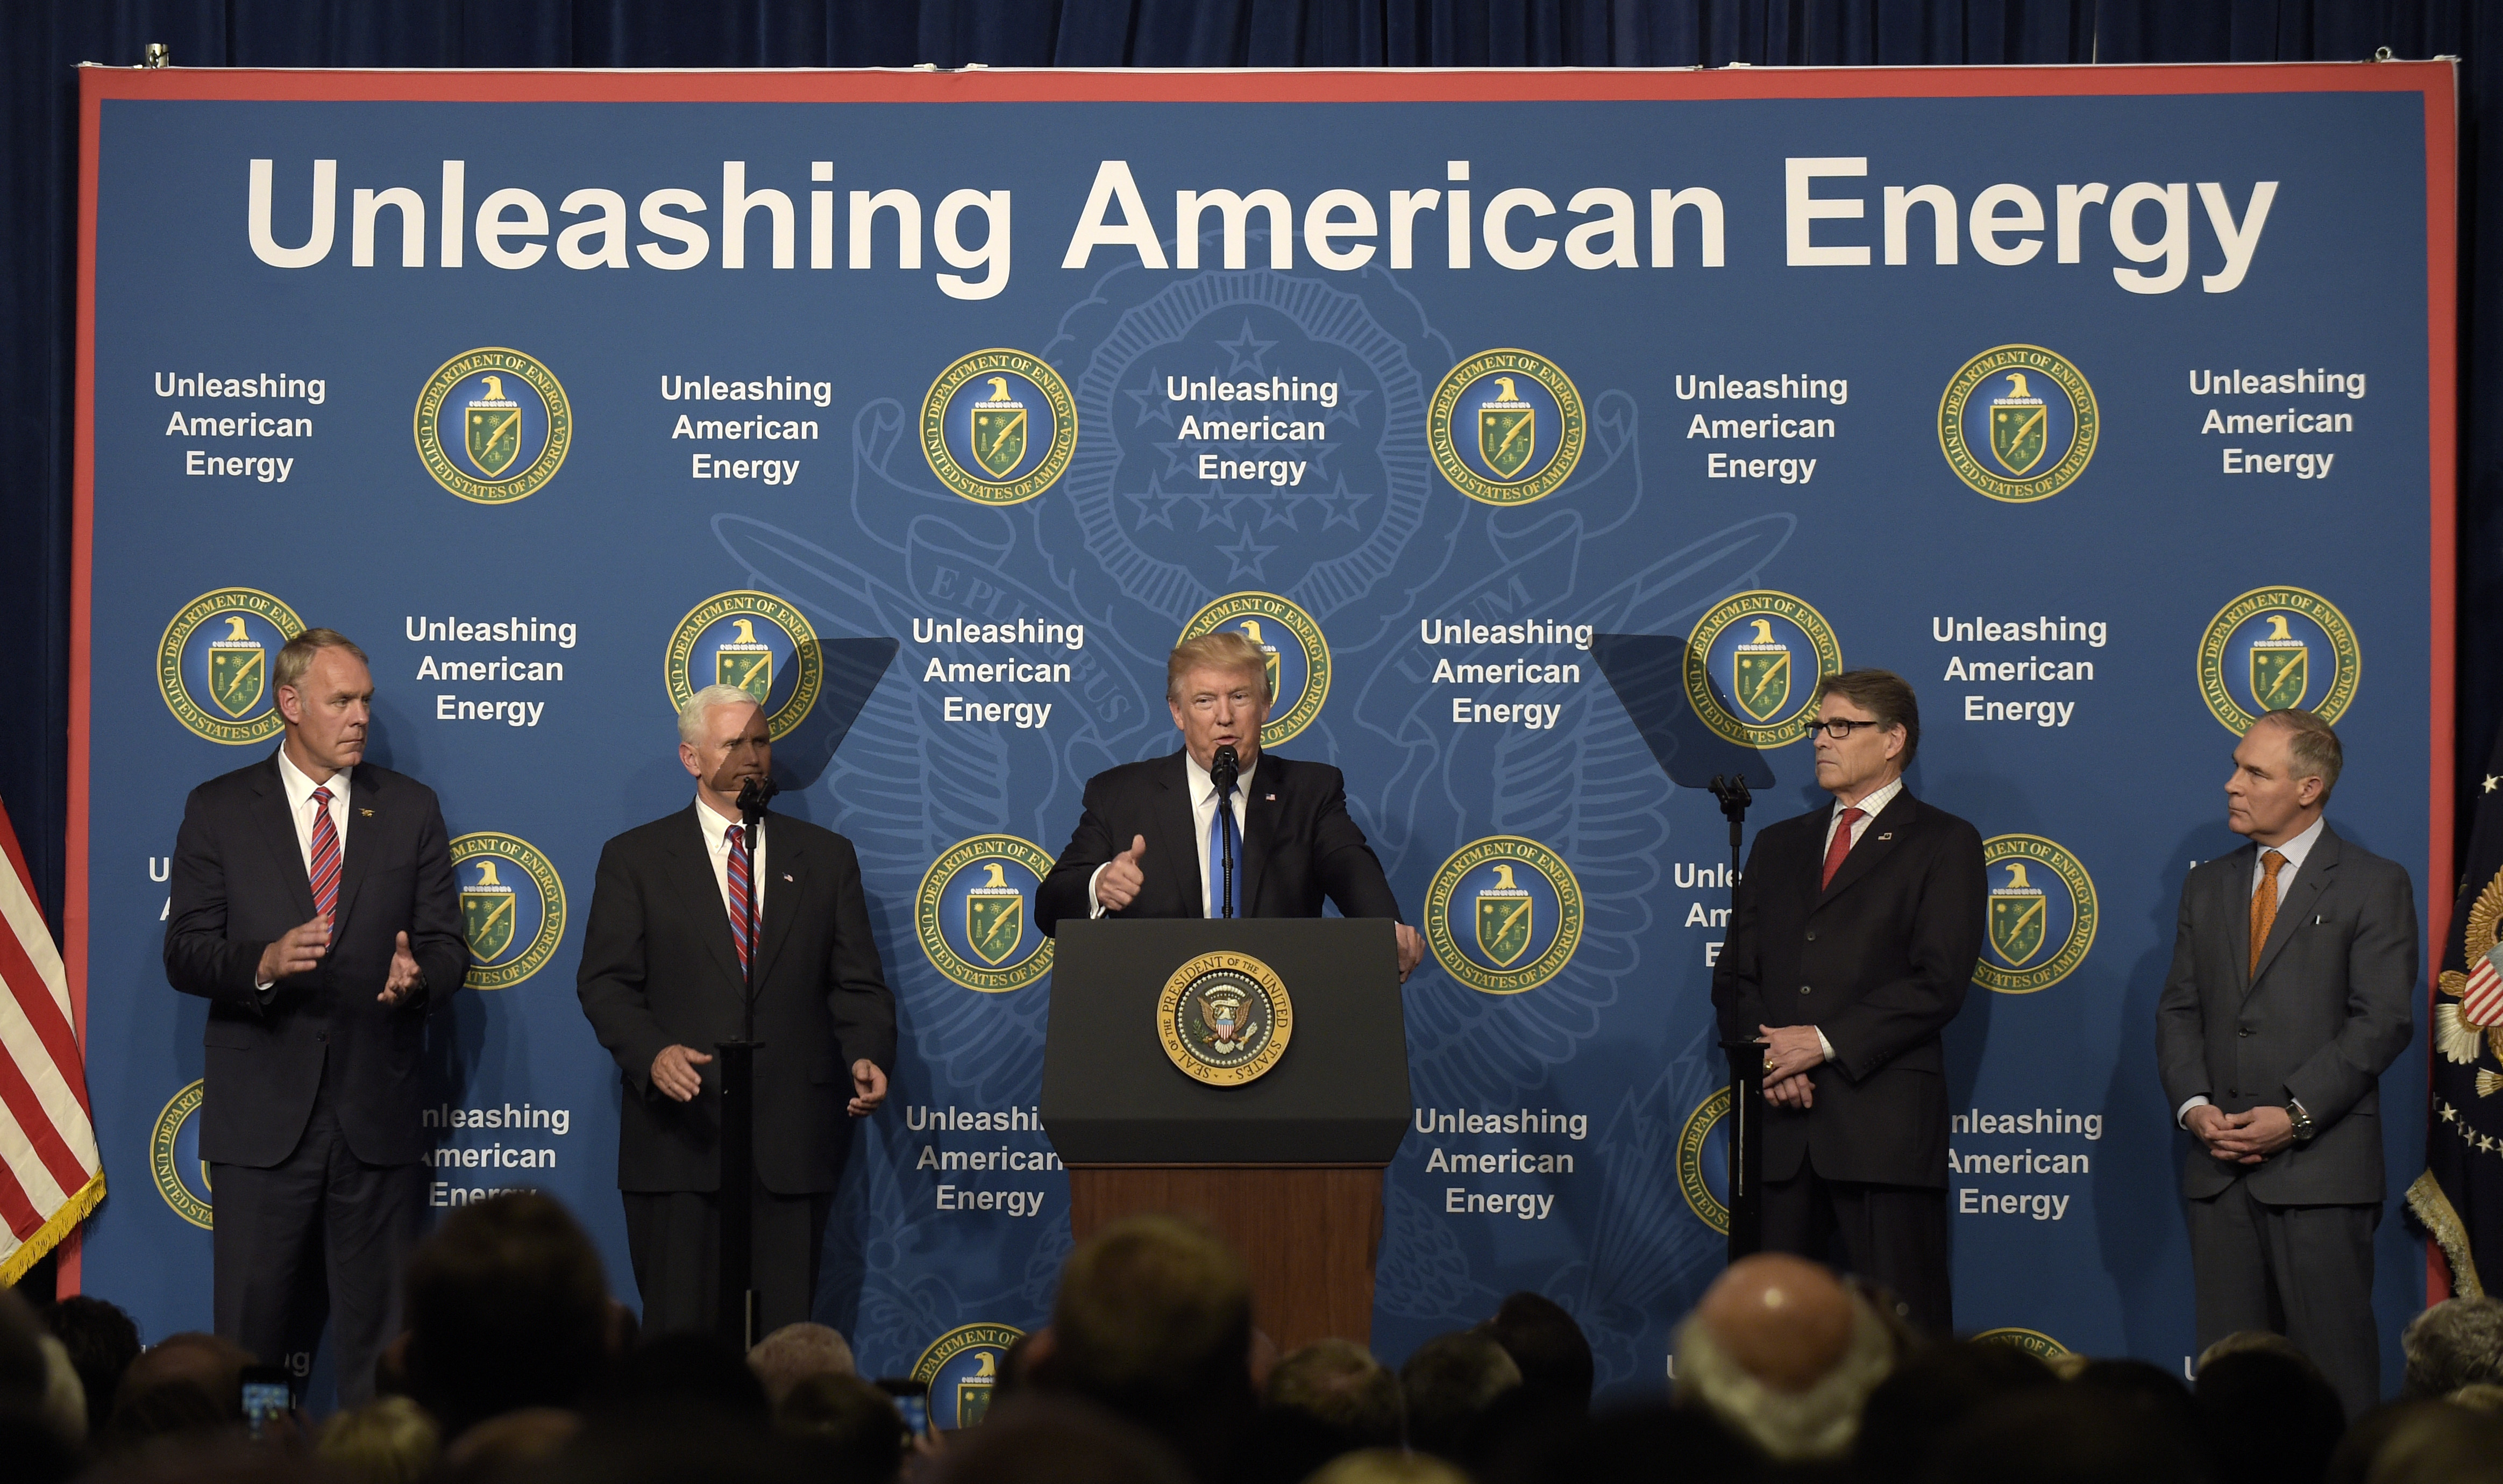 Trump-1 President Donald Trump, center, standing with from left, Interior Secretary Ryan Zinke, Vice President Mike Pence, Energy Secretary Rick Perry and Environmental Protection Agency Administrator Scott Pruitt, speaks at the Department of Energy in Washington, Thursday, June 29, 2017. (AP Photo/Susan Walsh)